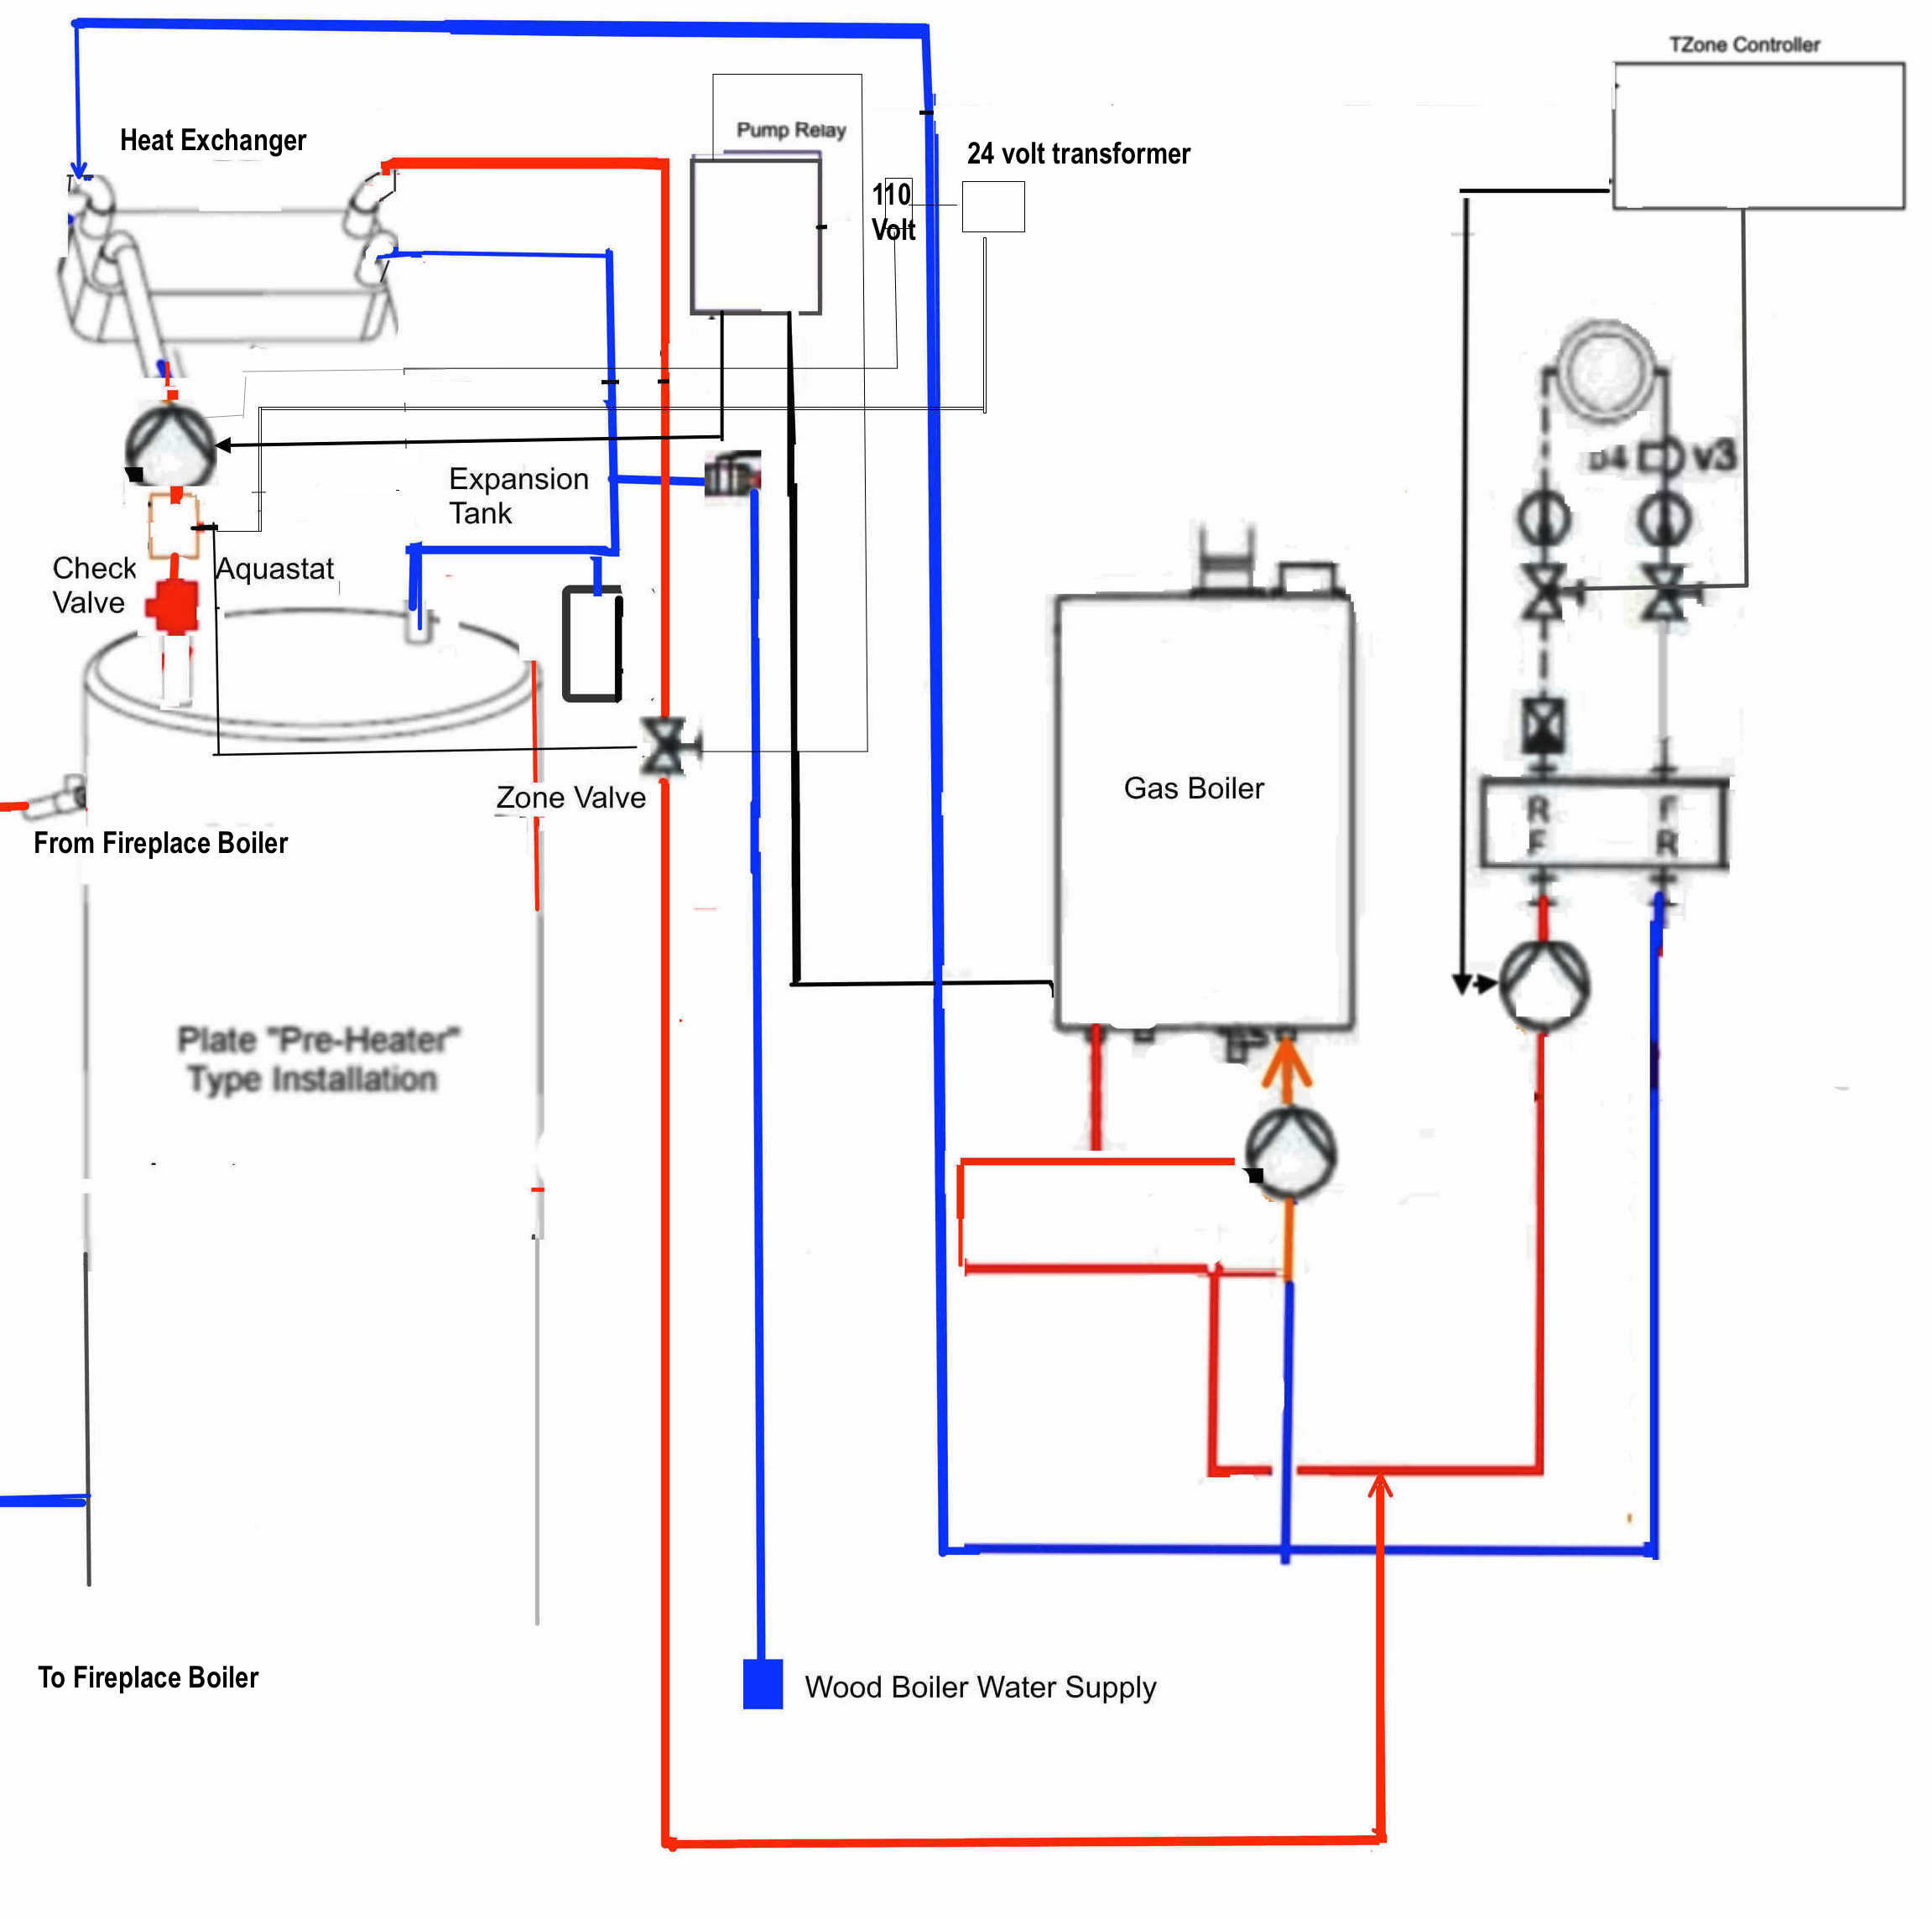 3 wire dryer schematic wiring fp boiler storage wiring twinsprings research institute 3 wire stove schematic wiring diagram #7